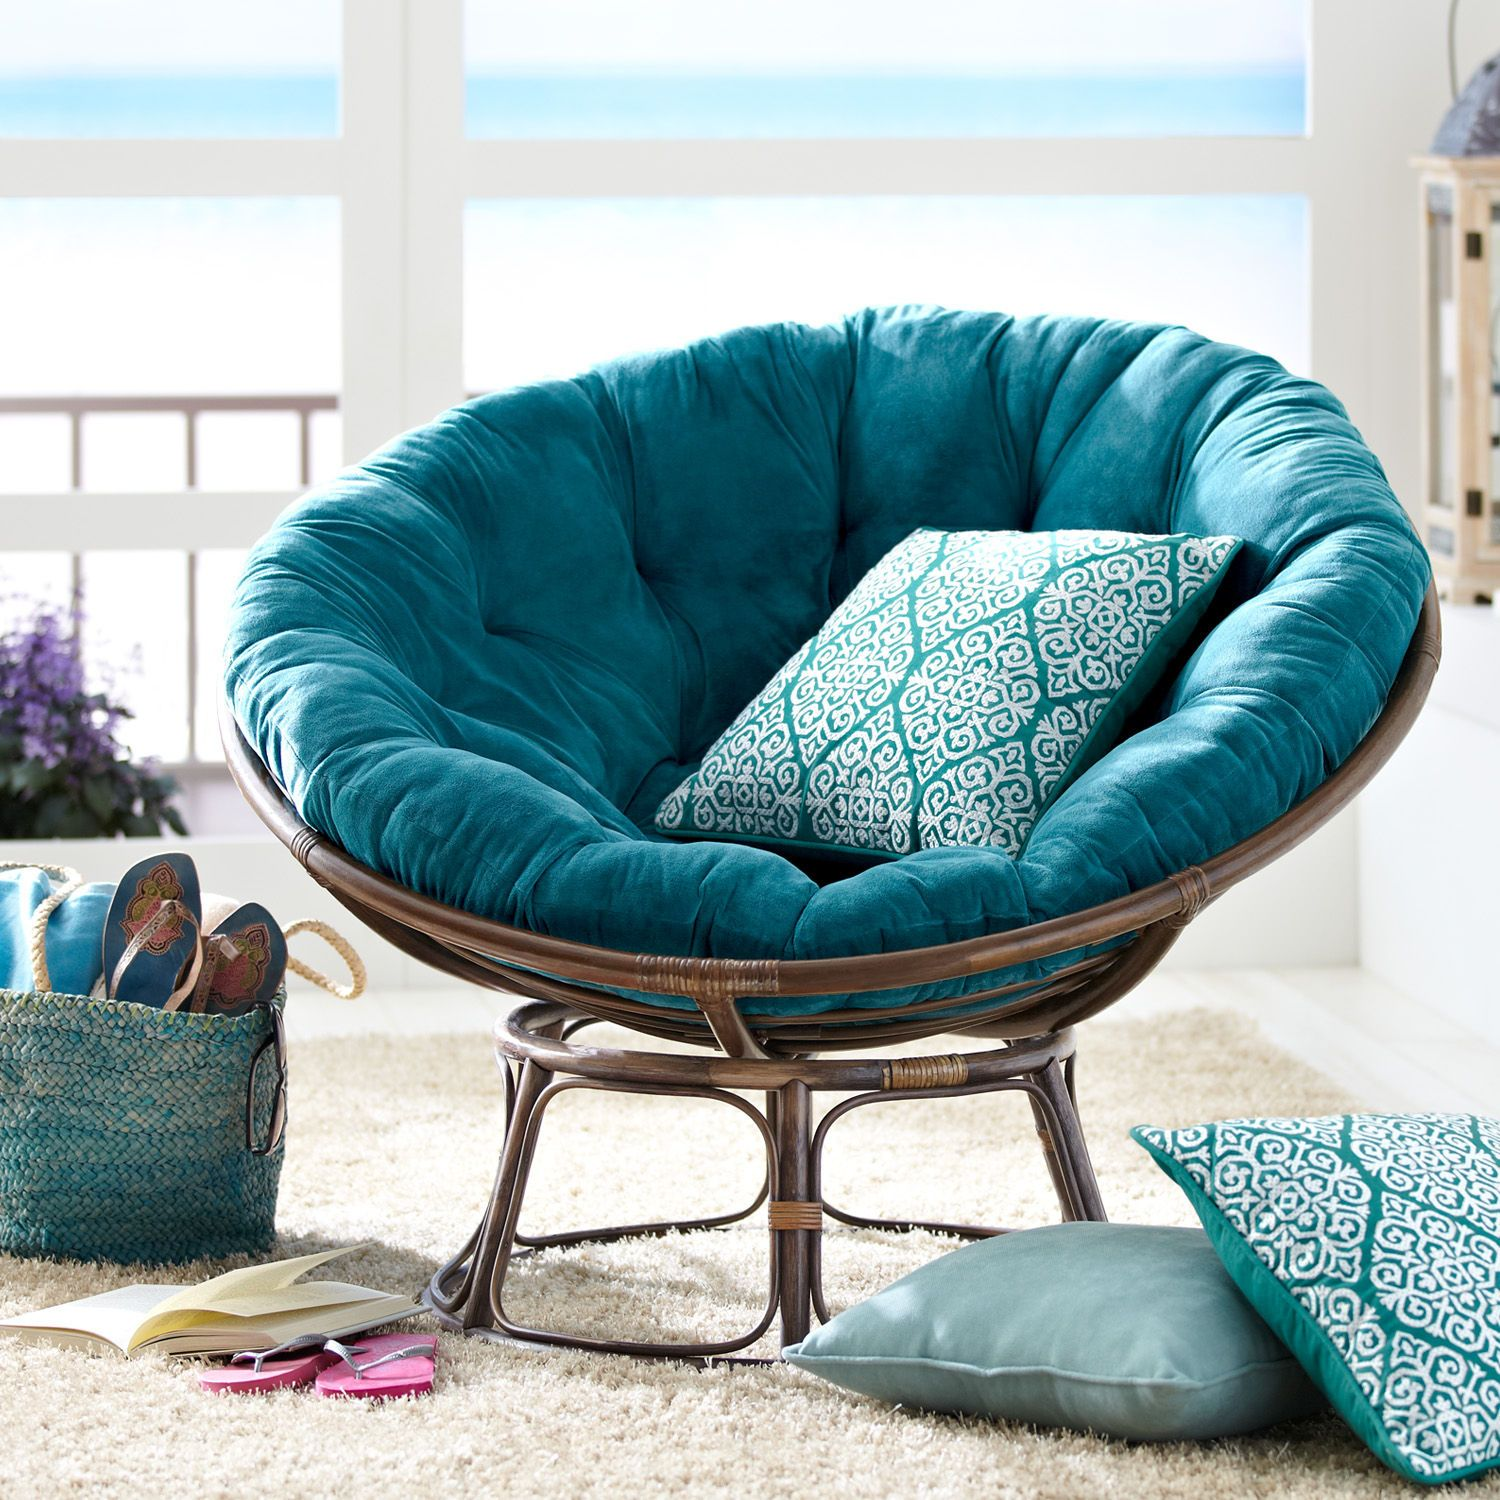 Round Comfy Chair The Papasan Chair A Design Classic With Many Different